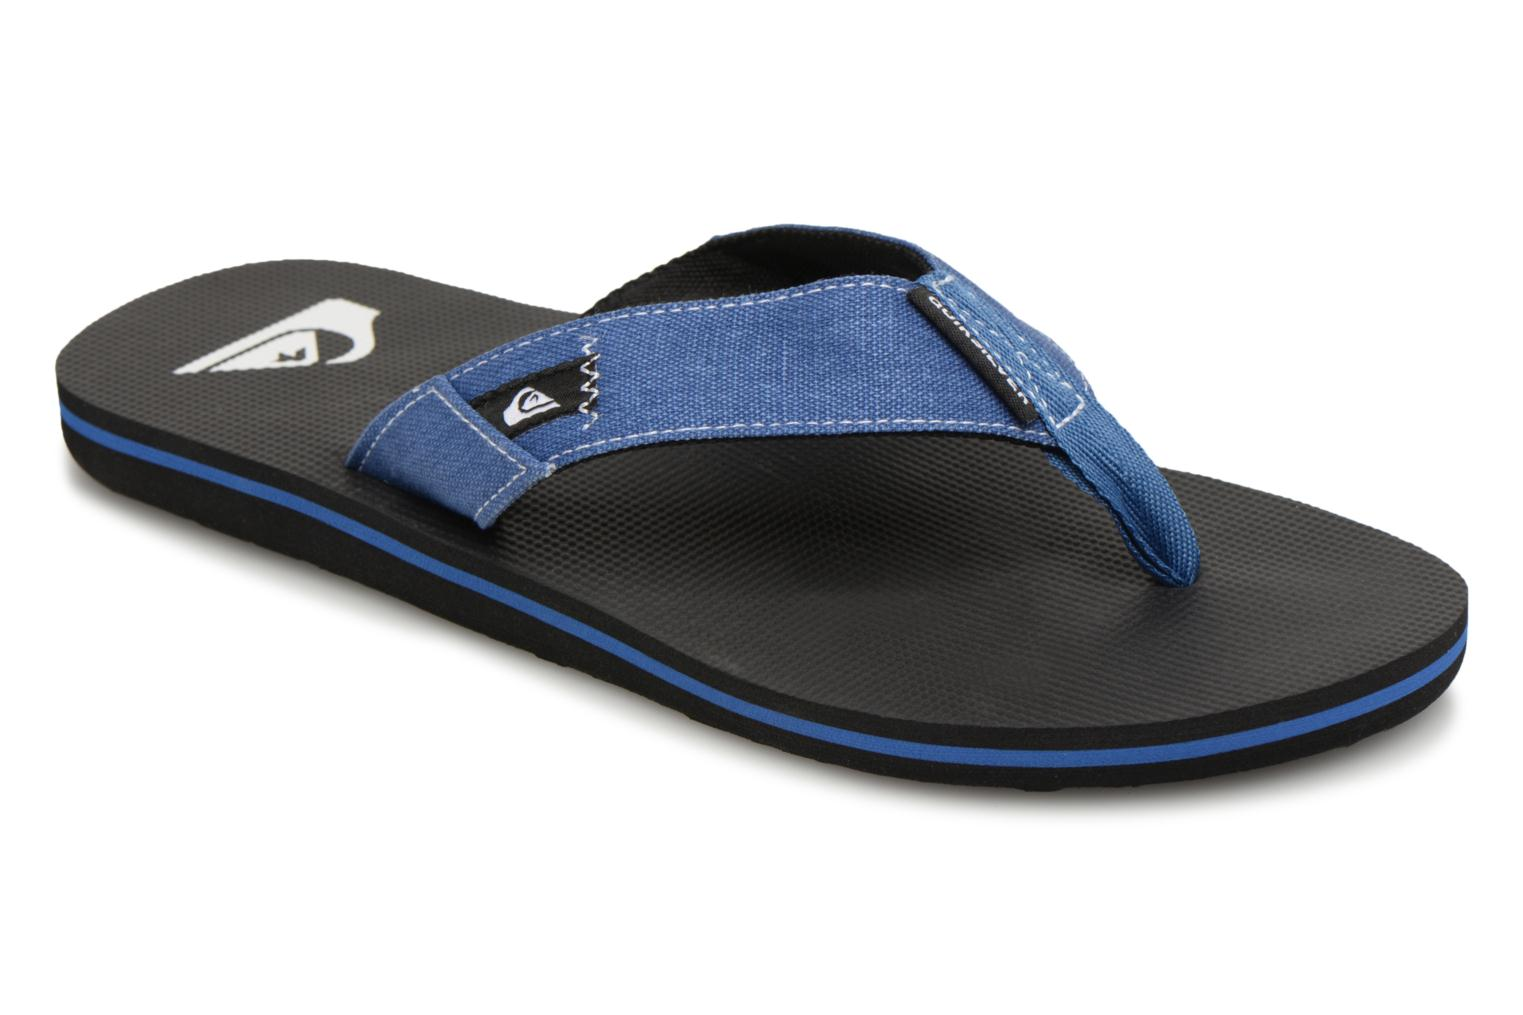 Marques Chaussure homme Quiksilver homme Molokai Abyss BLUE/BLACK/BLUE